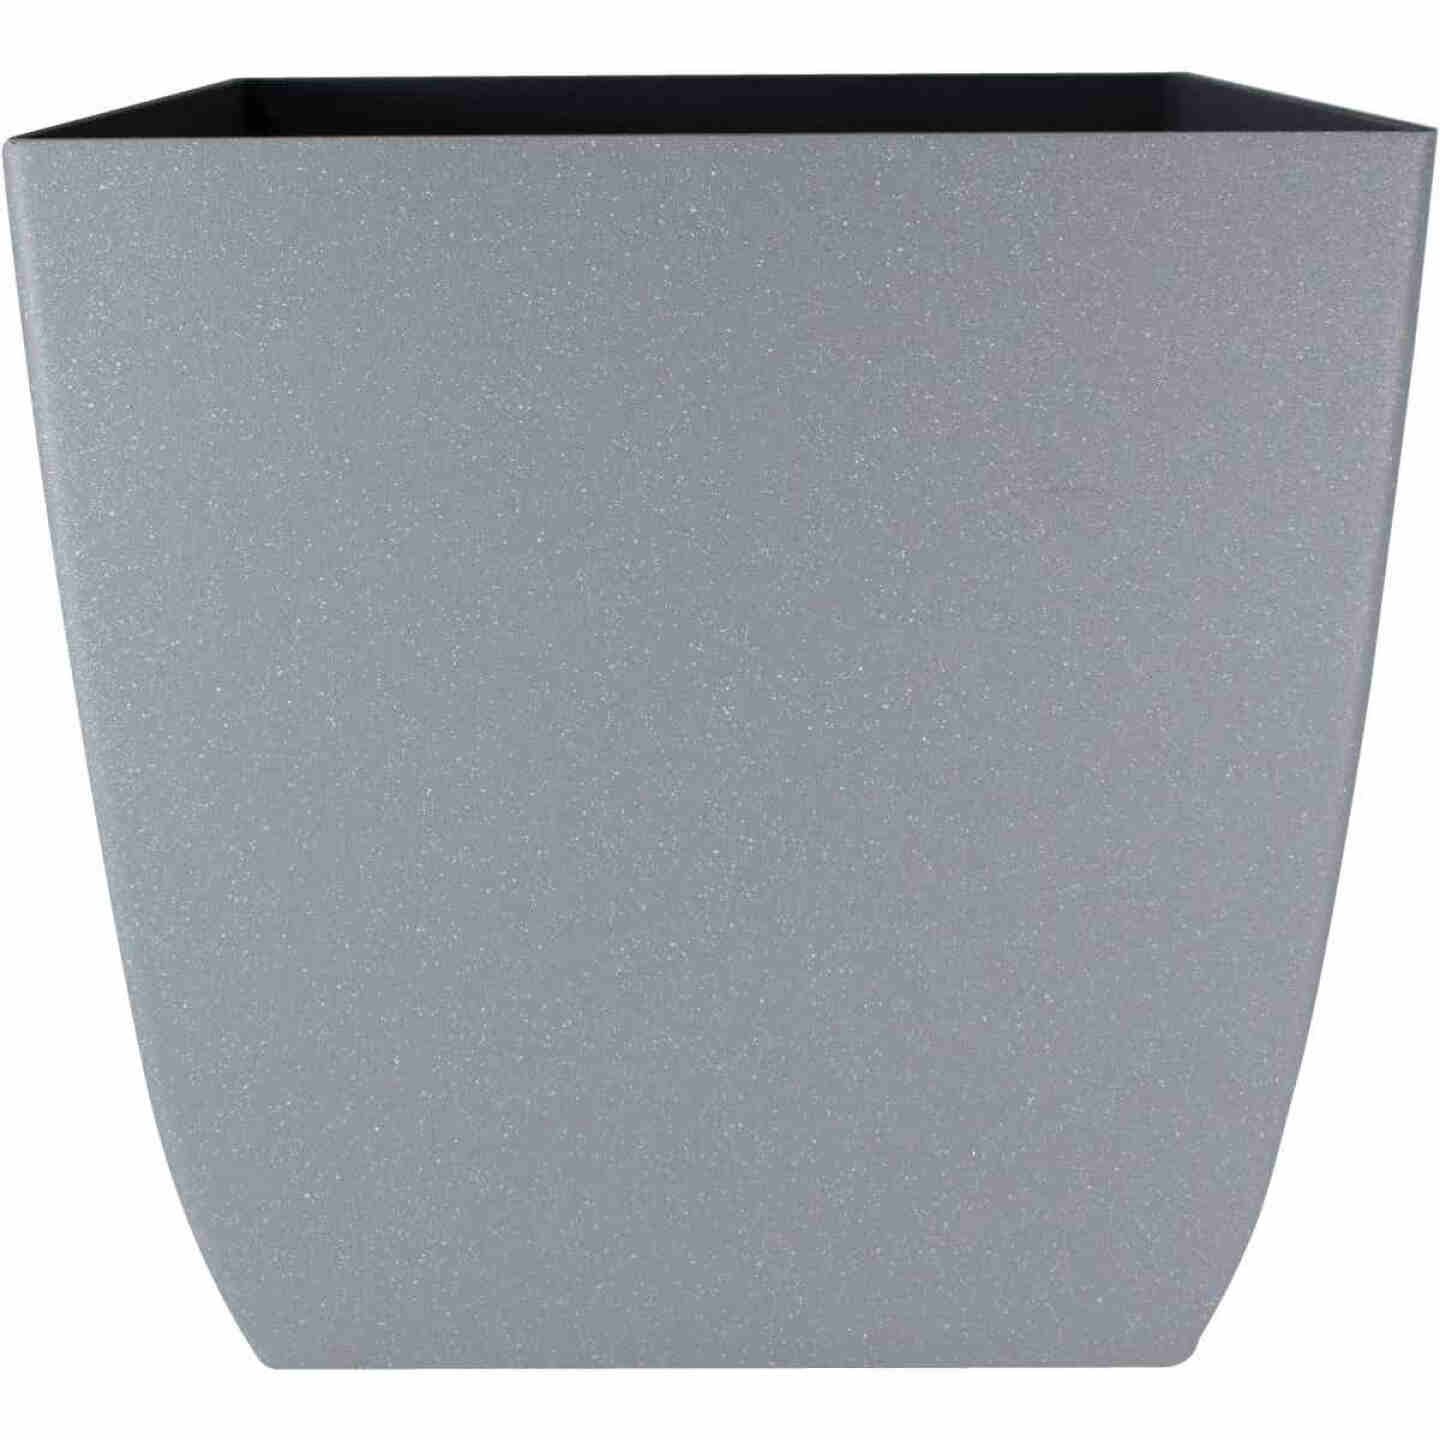 Myers Santa Fe 12 In. Pebble Gray Square Planter Image 1